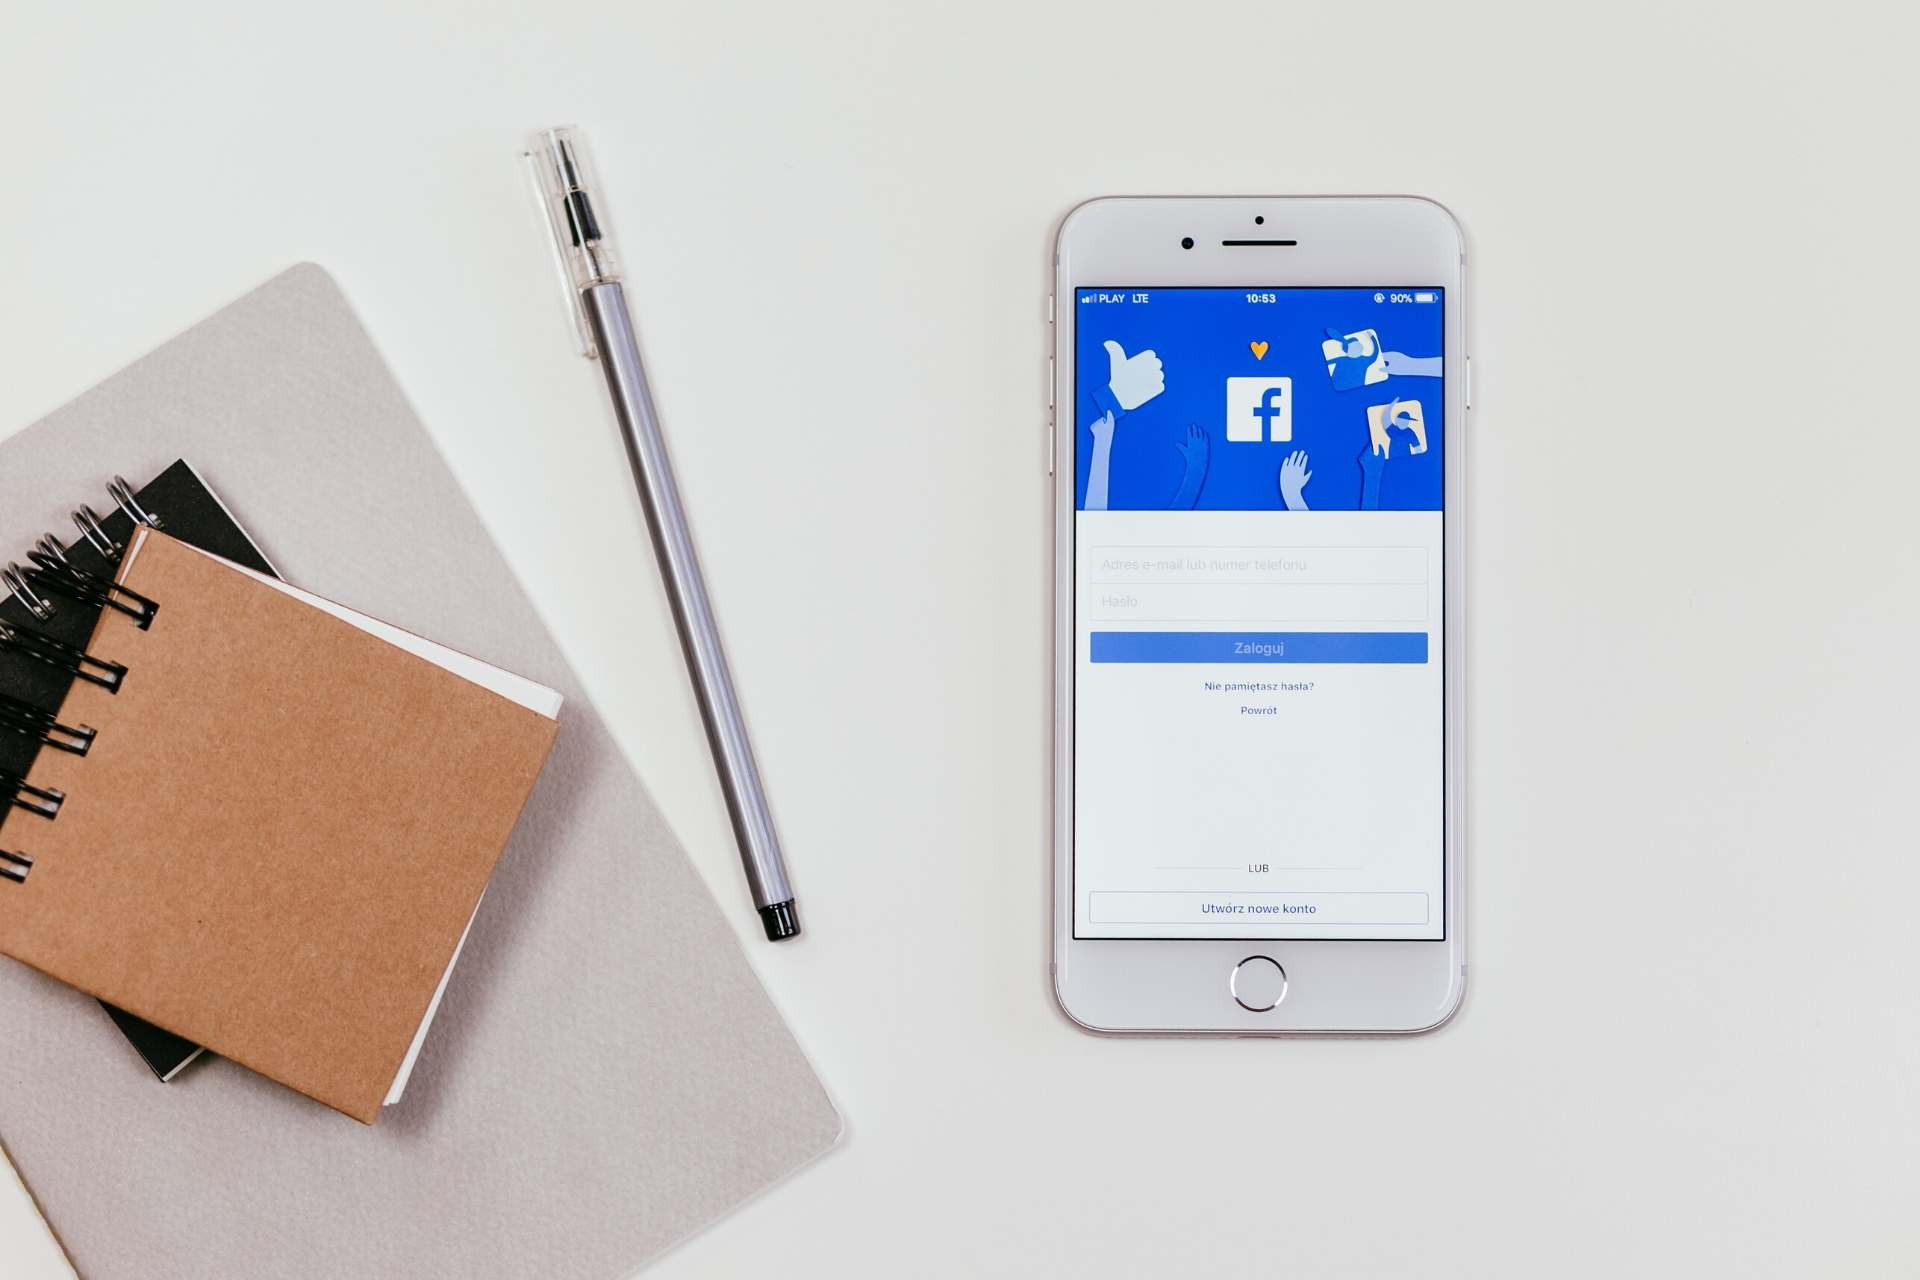 Facebook offers advertisers a wide range of ad formats. These include Image ads, Video ads, Carousel ads, Instant Experience ads, and Collection ads.